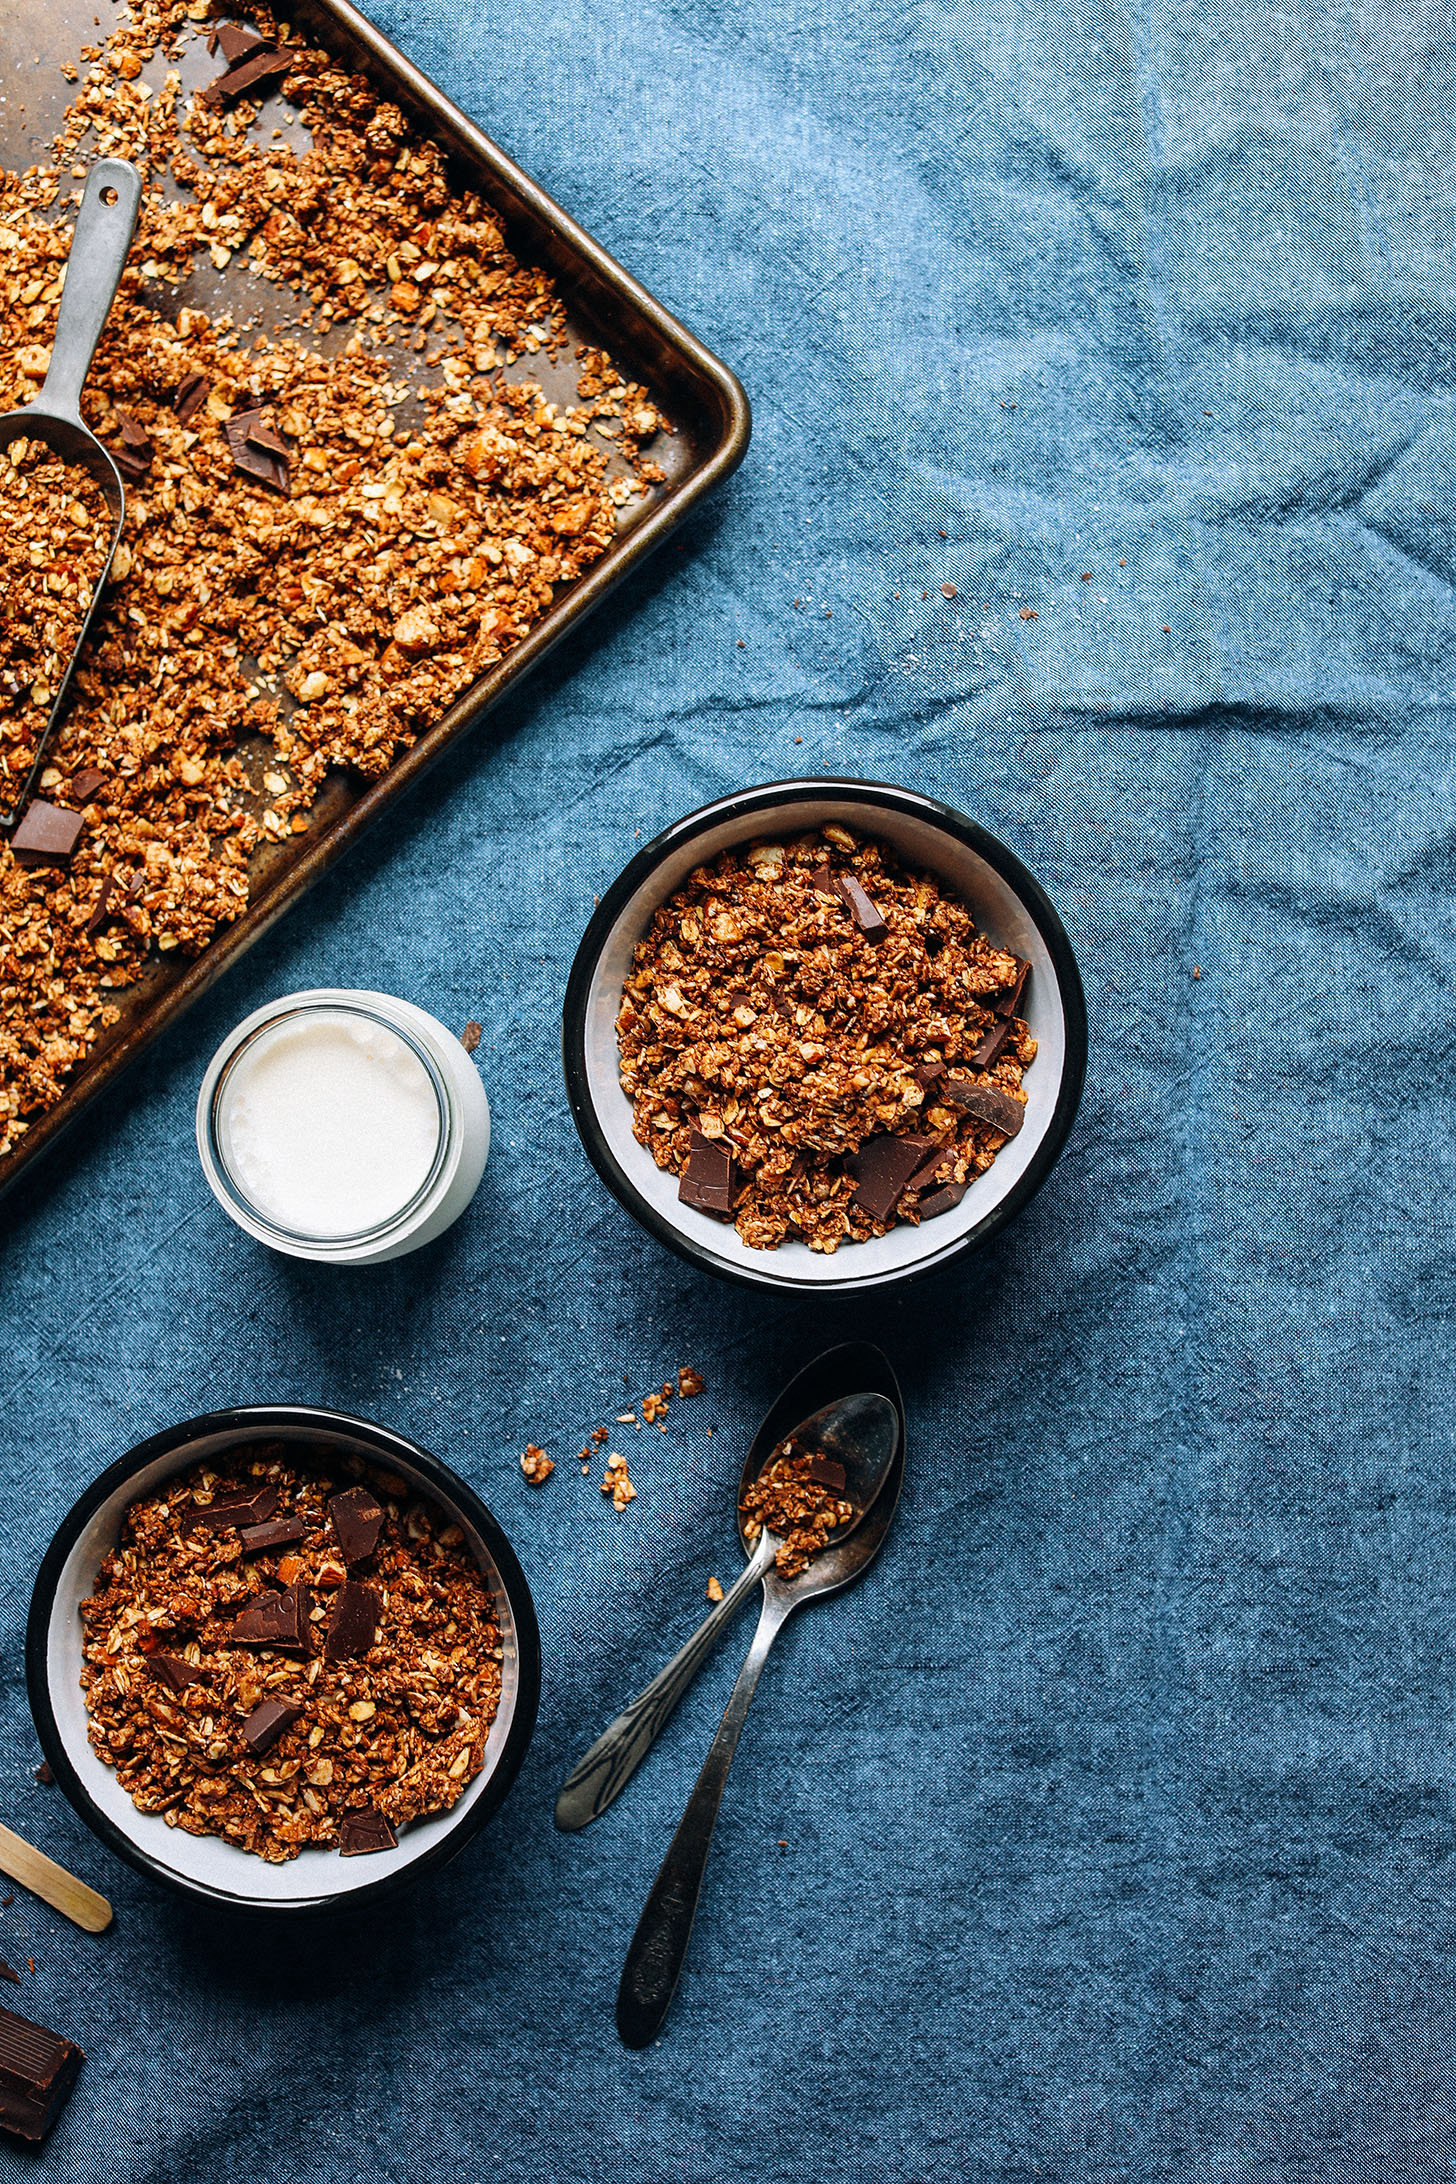 Baking sheet and two serving bowls with gluten-free vegan Dark Chocolate Granola with sea salt